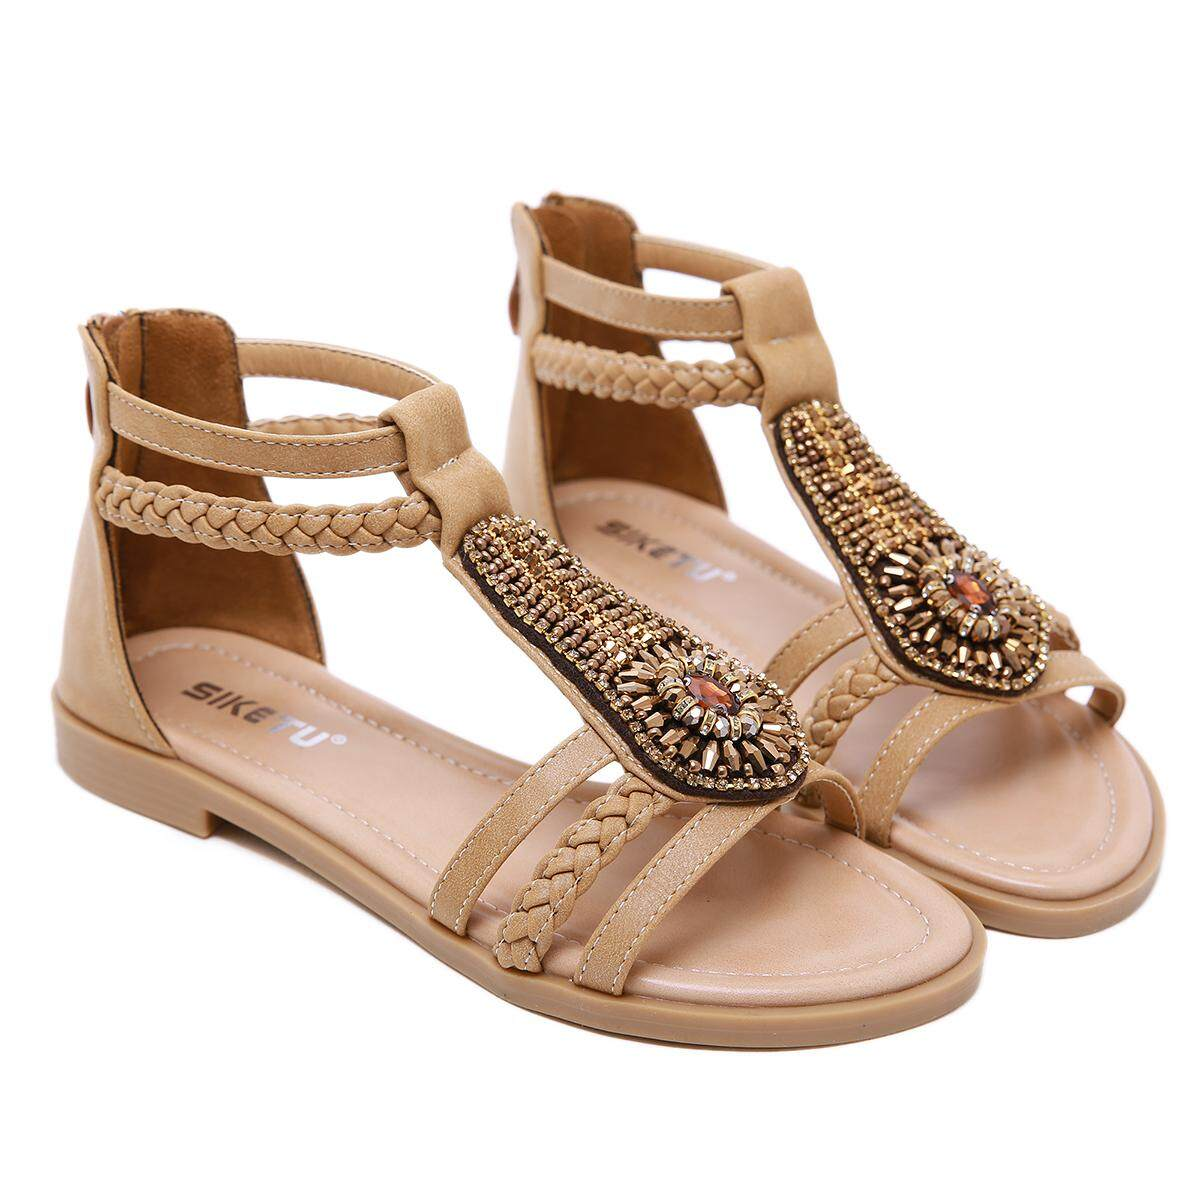 911d0a83d48f Eastern Dawn 2019 New Women s Sandals Size 35-42 Thick Heel 2CM Decorative  Rhinestone Wedges